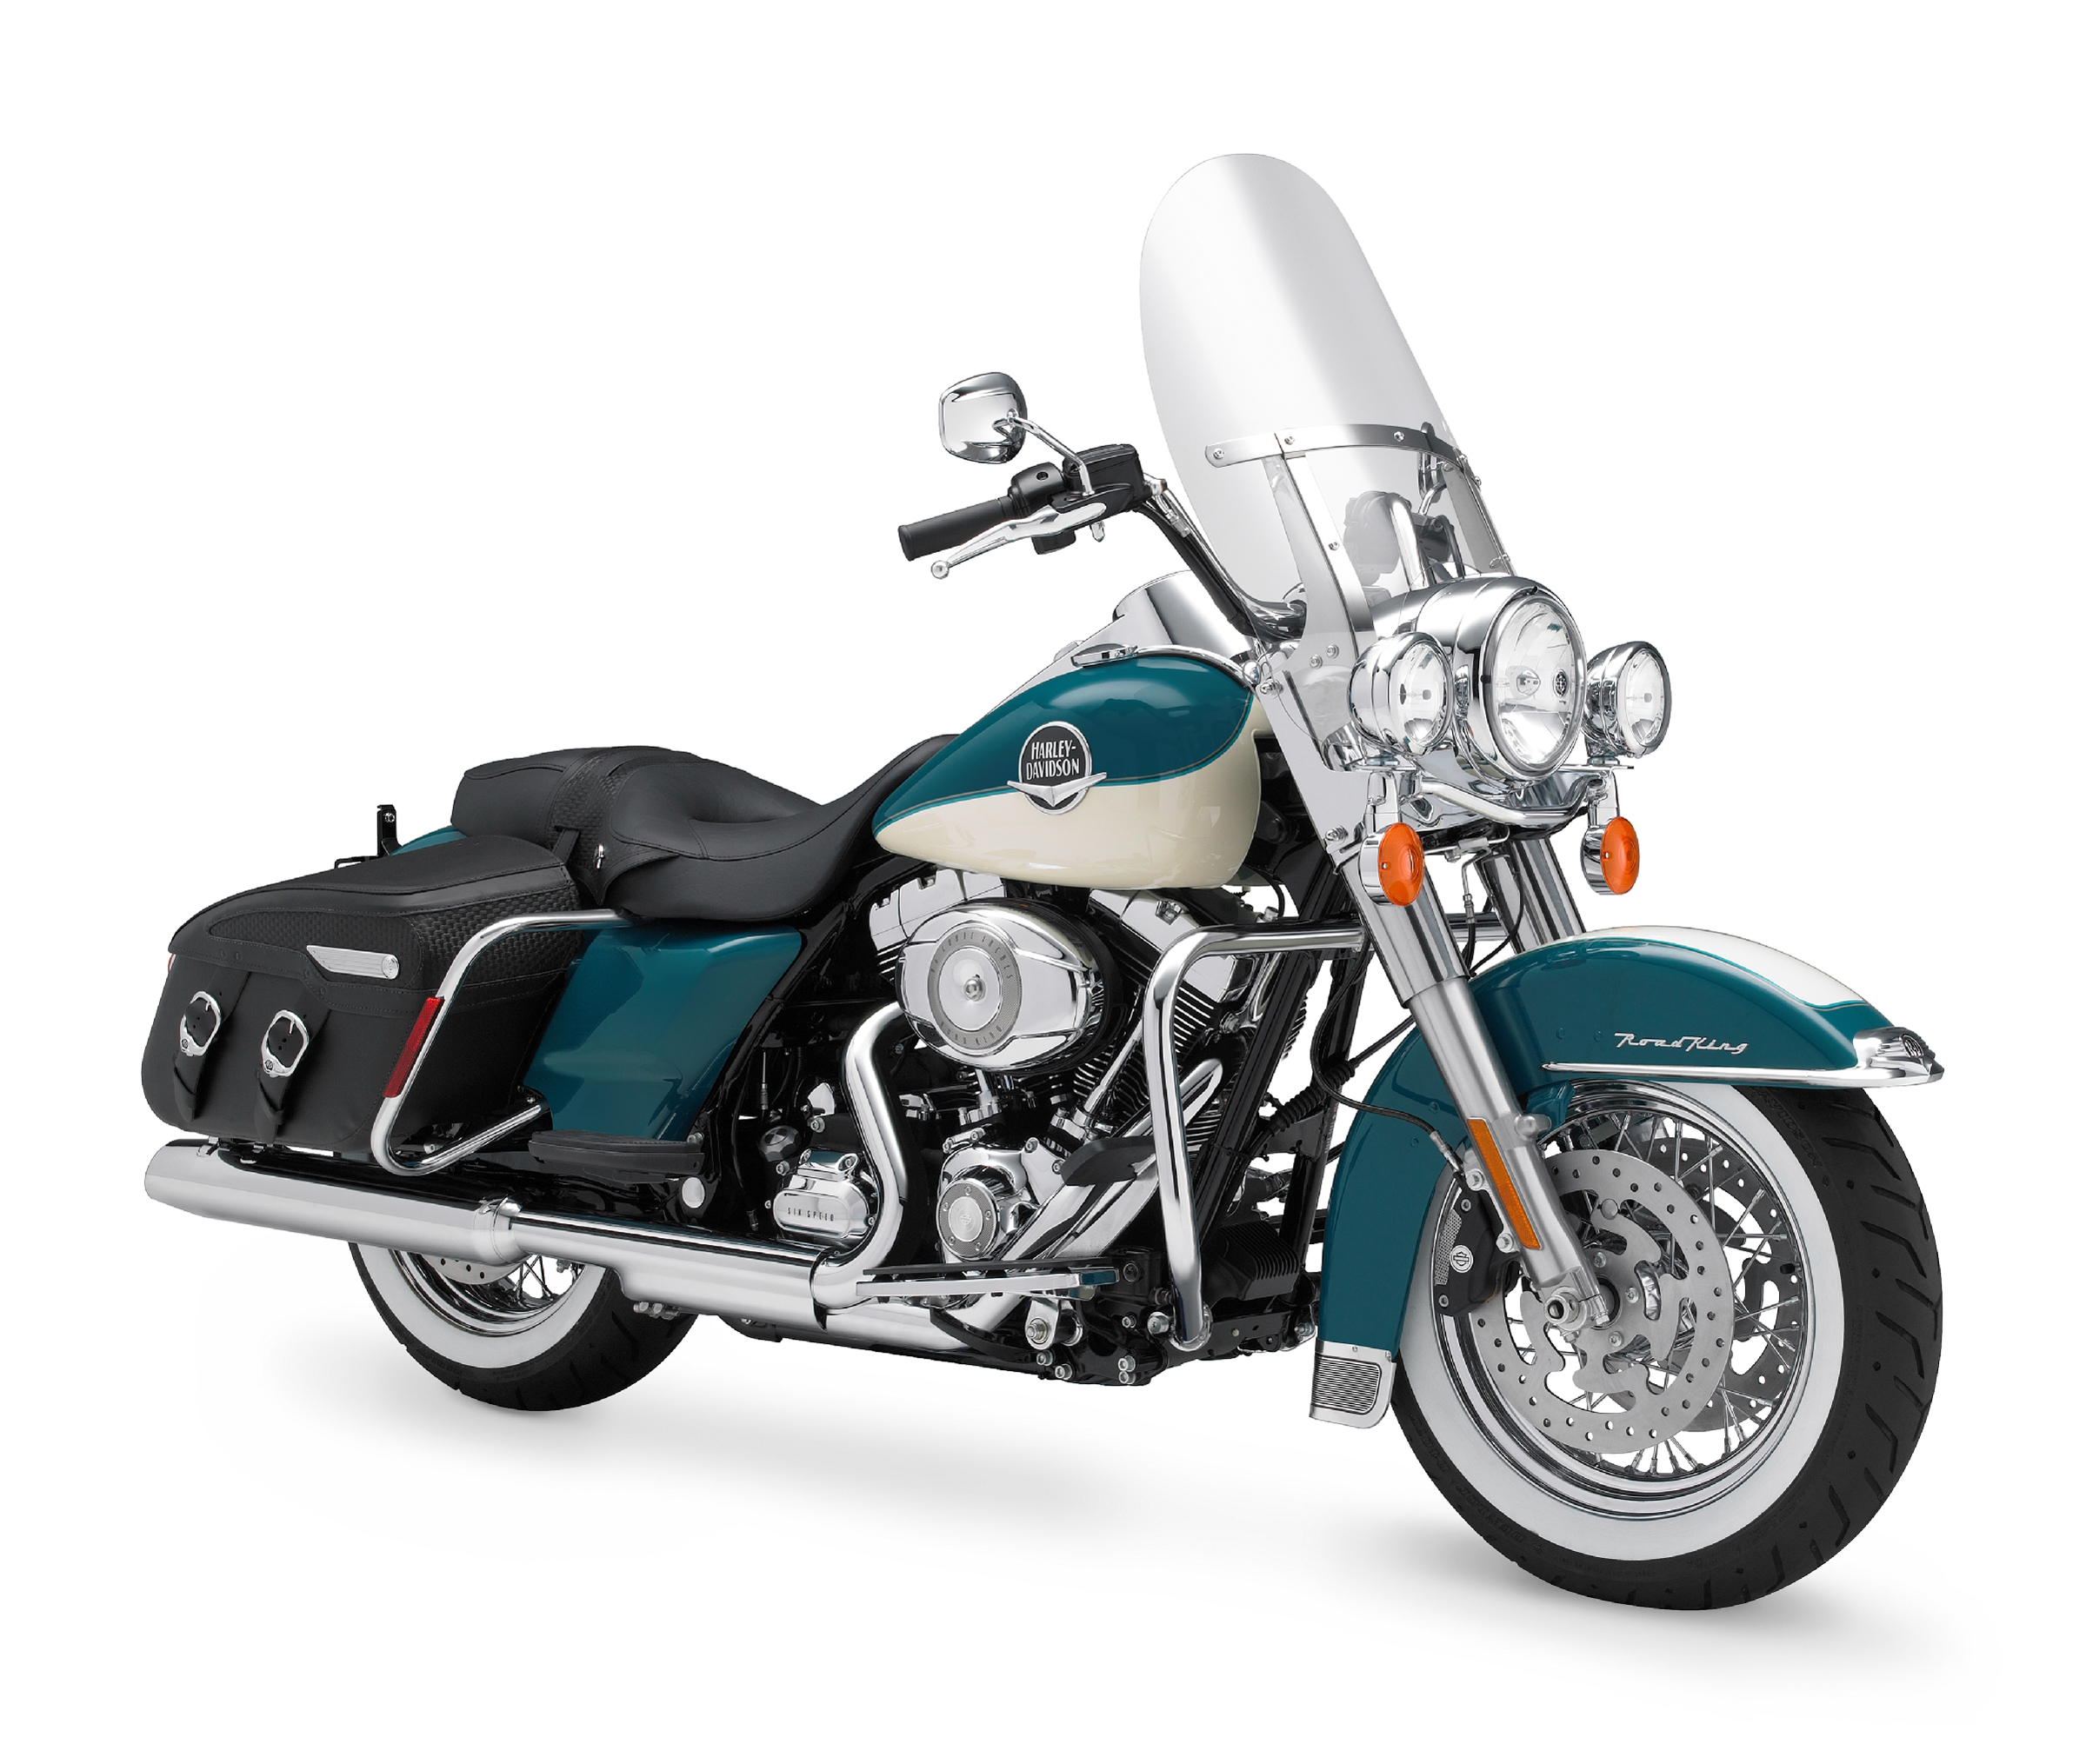 Harley Davidson Touring With 2009 Harley Davidson Touring Top Speed